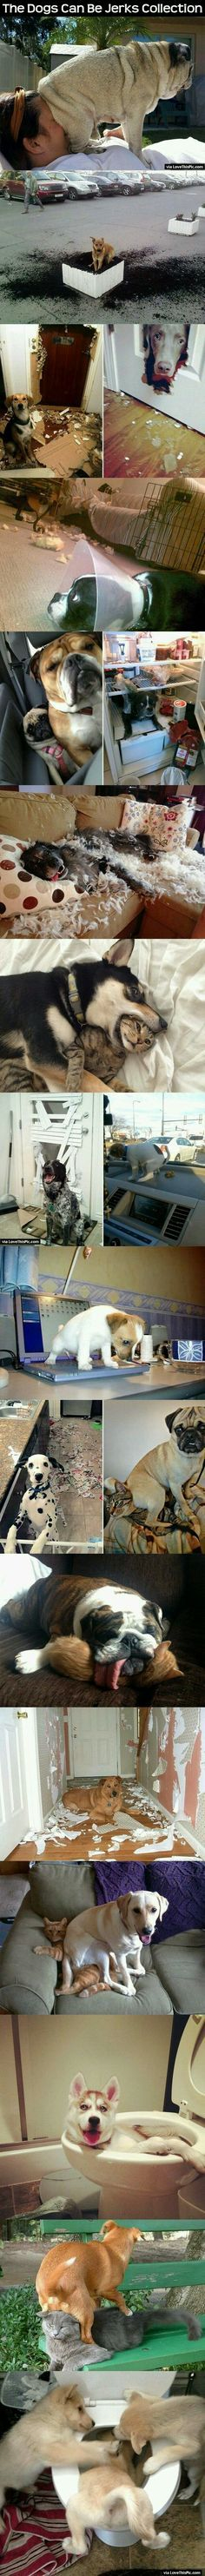 Pets in trouble